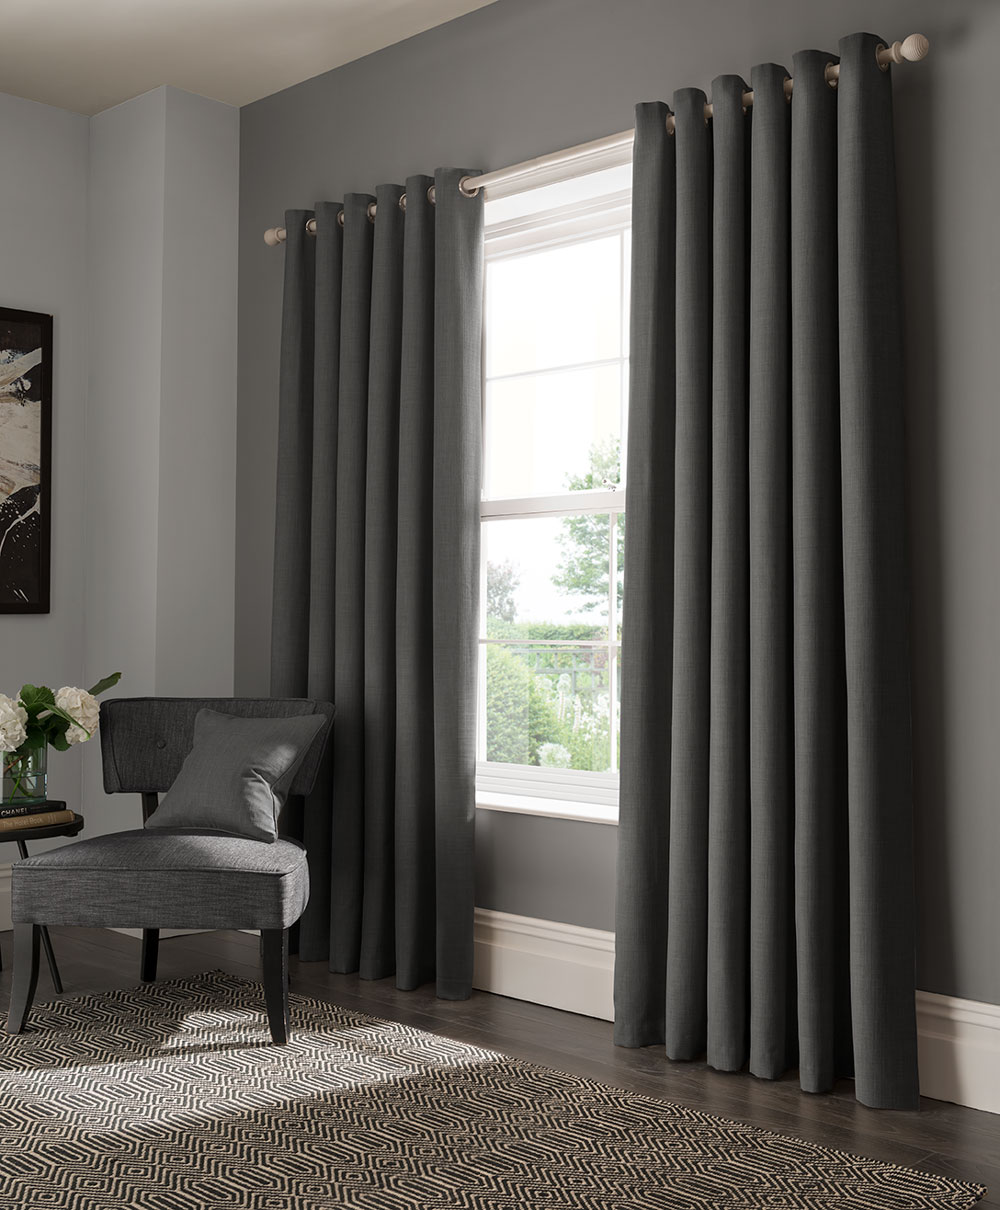 Studio G Elba Eyelet Curtains Steel Ready Made Curtains - Product code: M1104/04/66X7